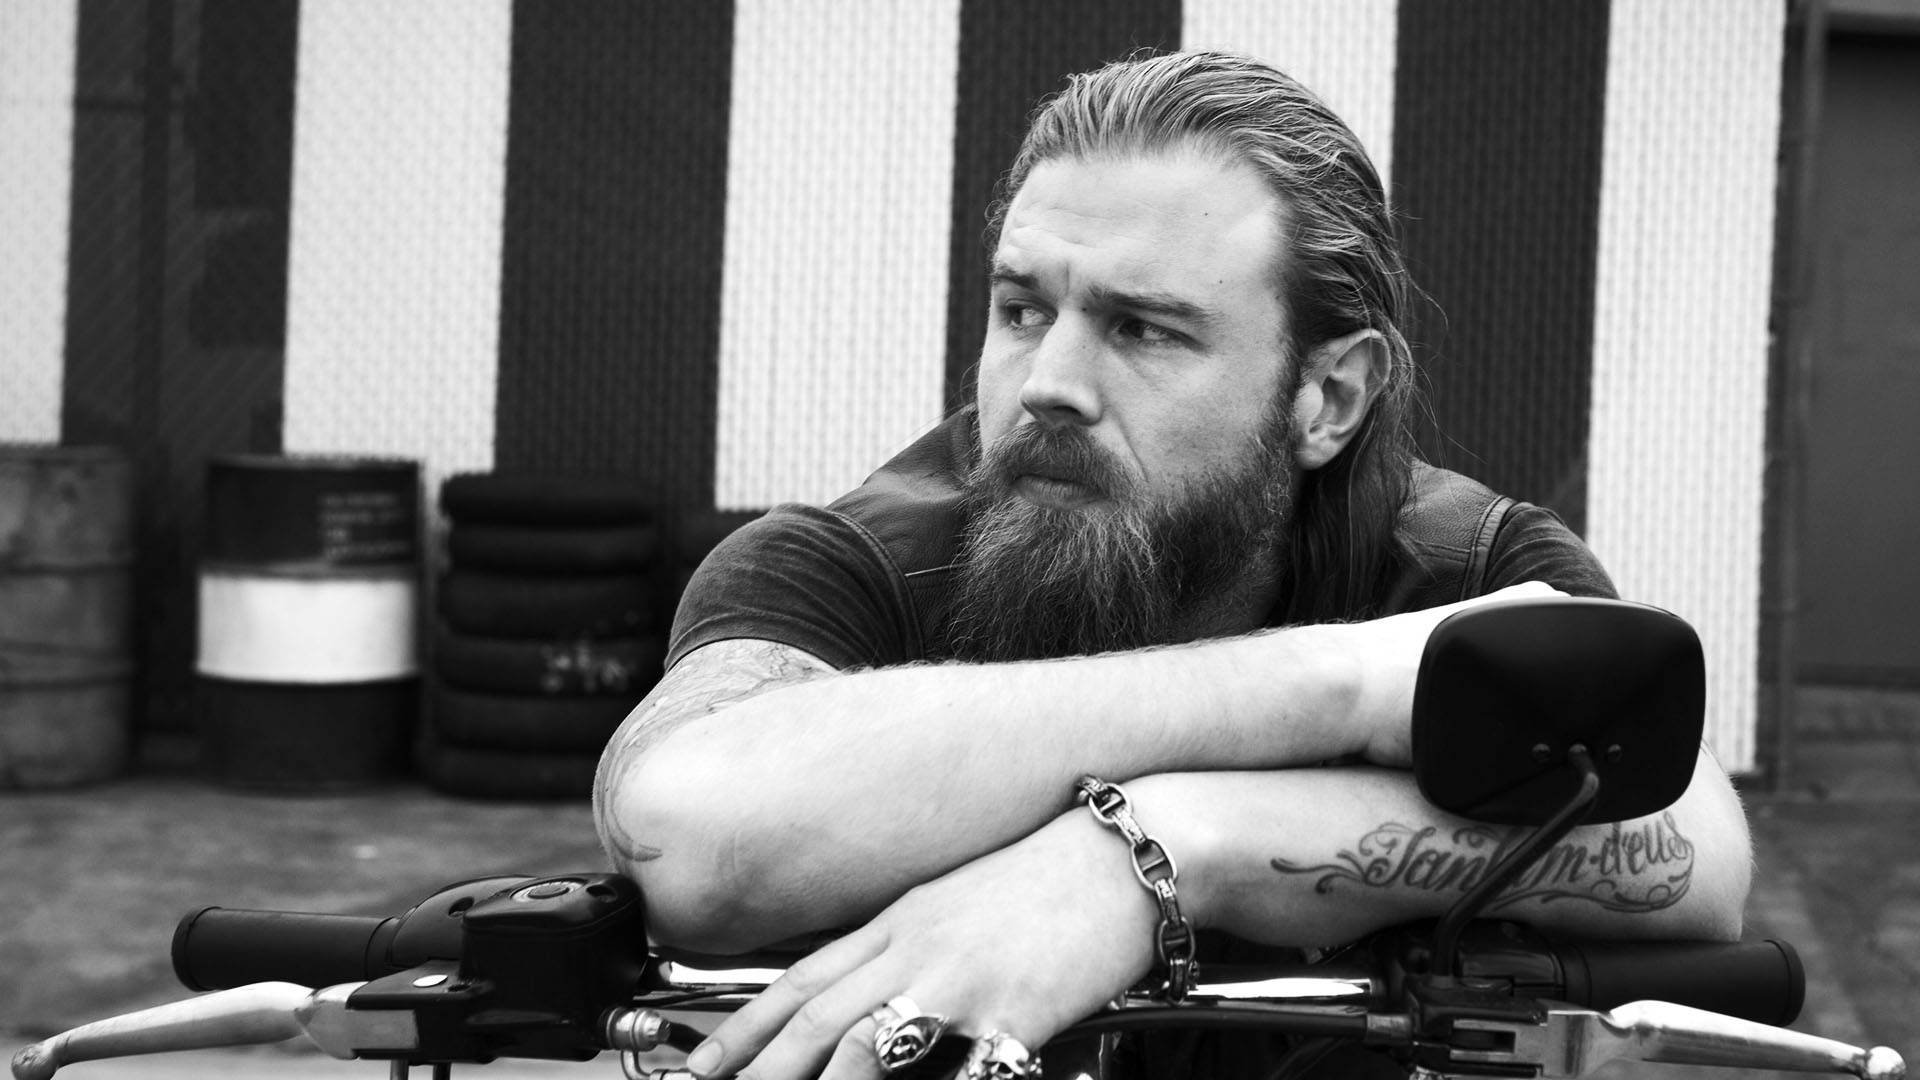 monochrome ryan hurst wallpaper 57937